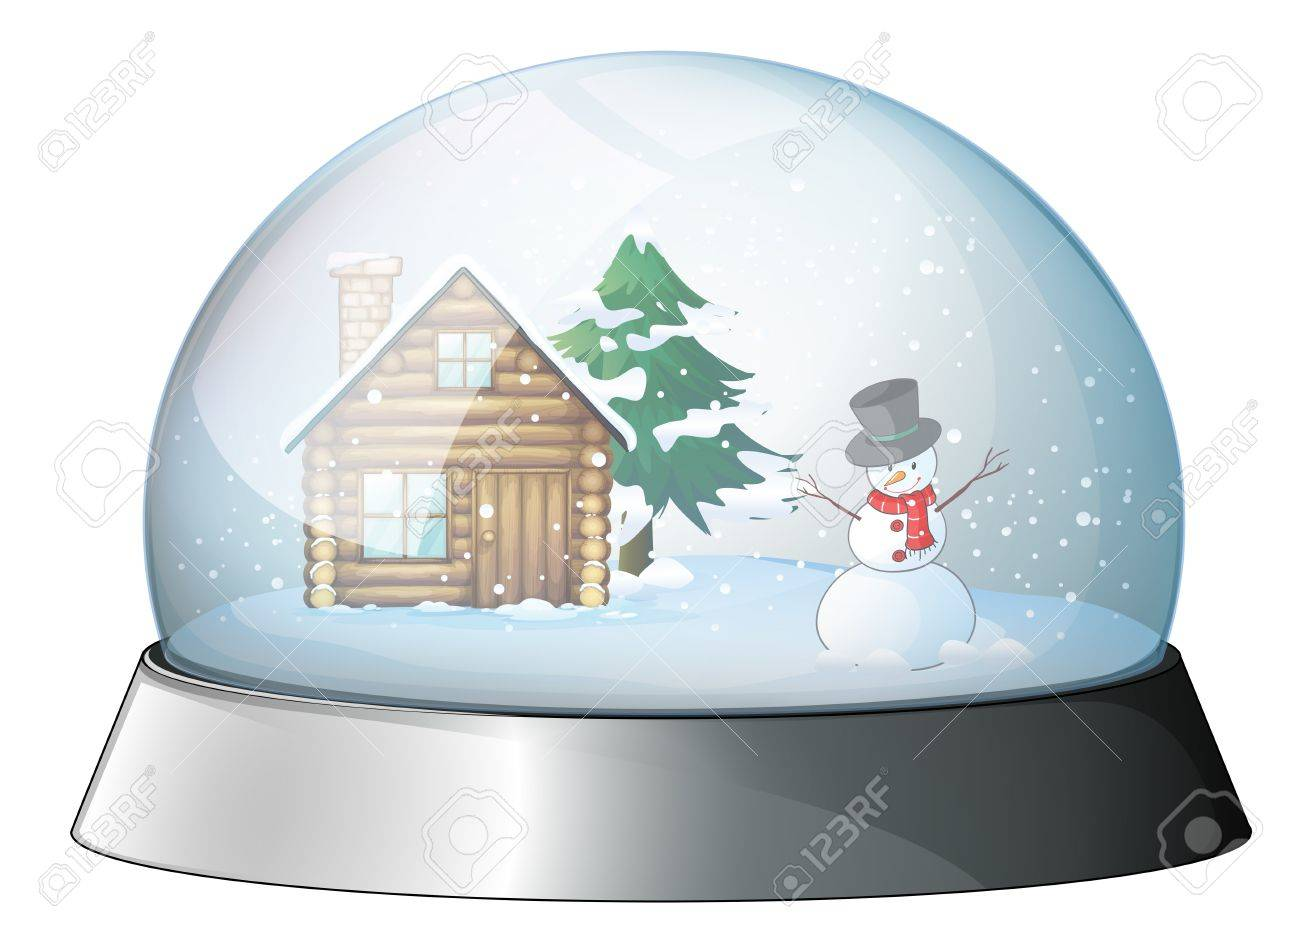 Illustration of a house and a snowman inside the crystal ball on a white background Stock Vector - 19874678